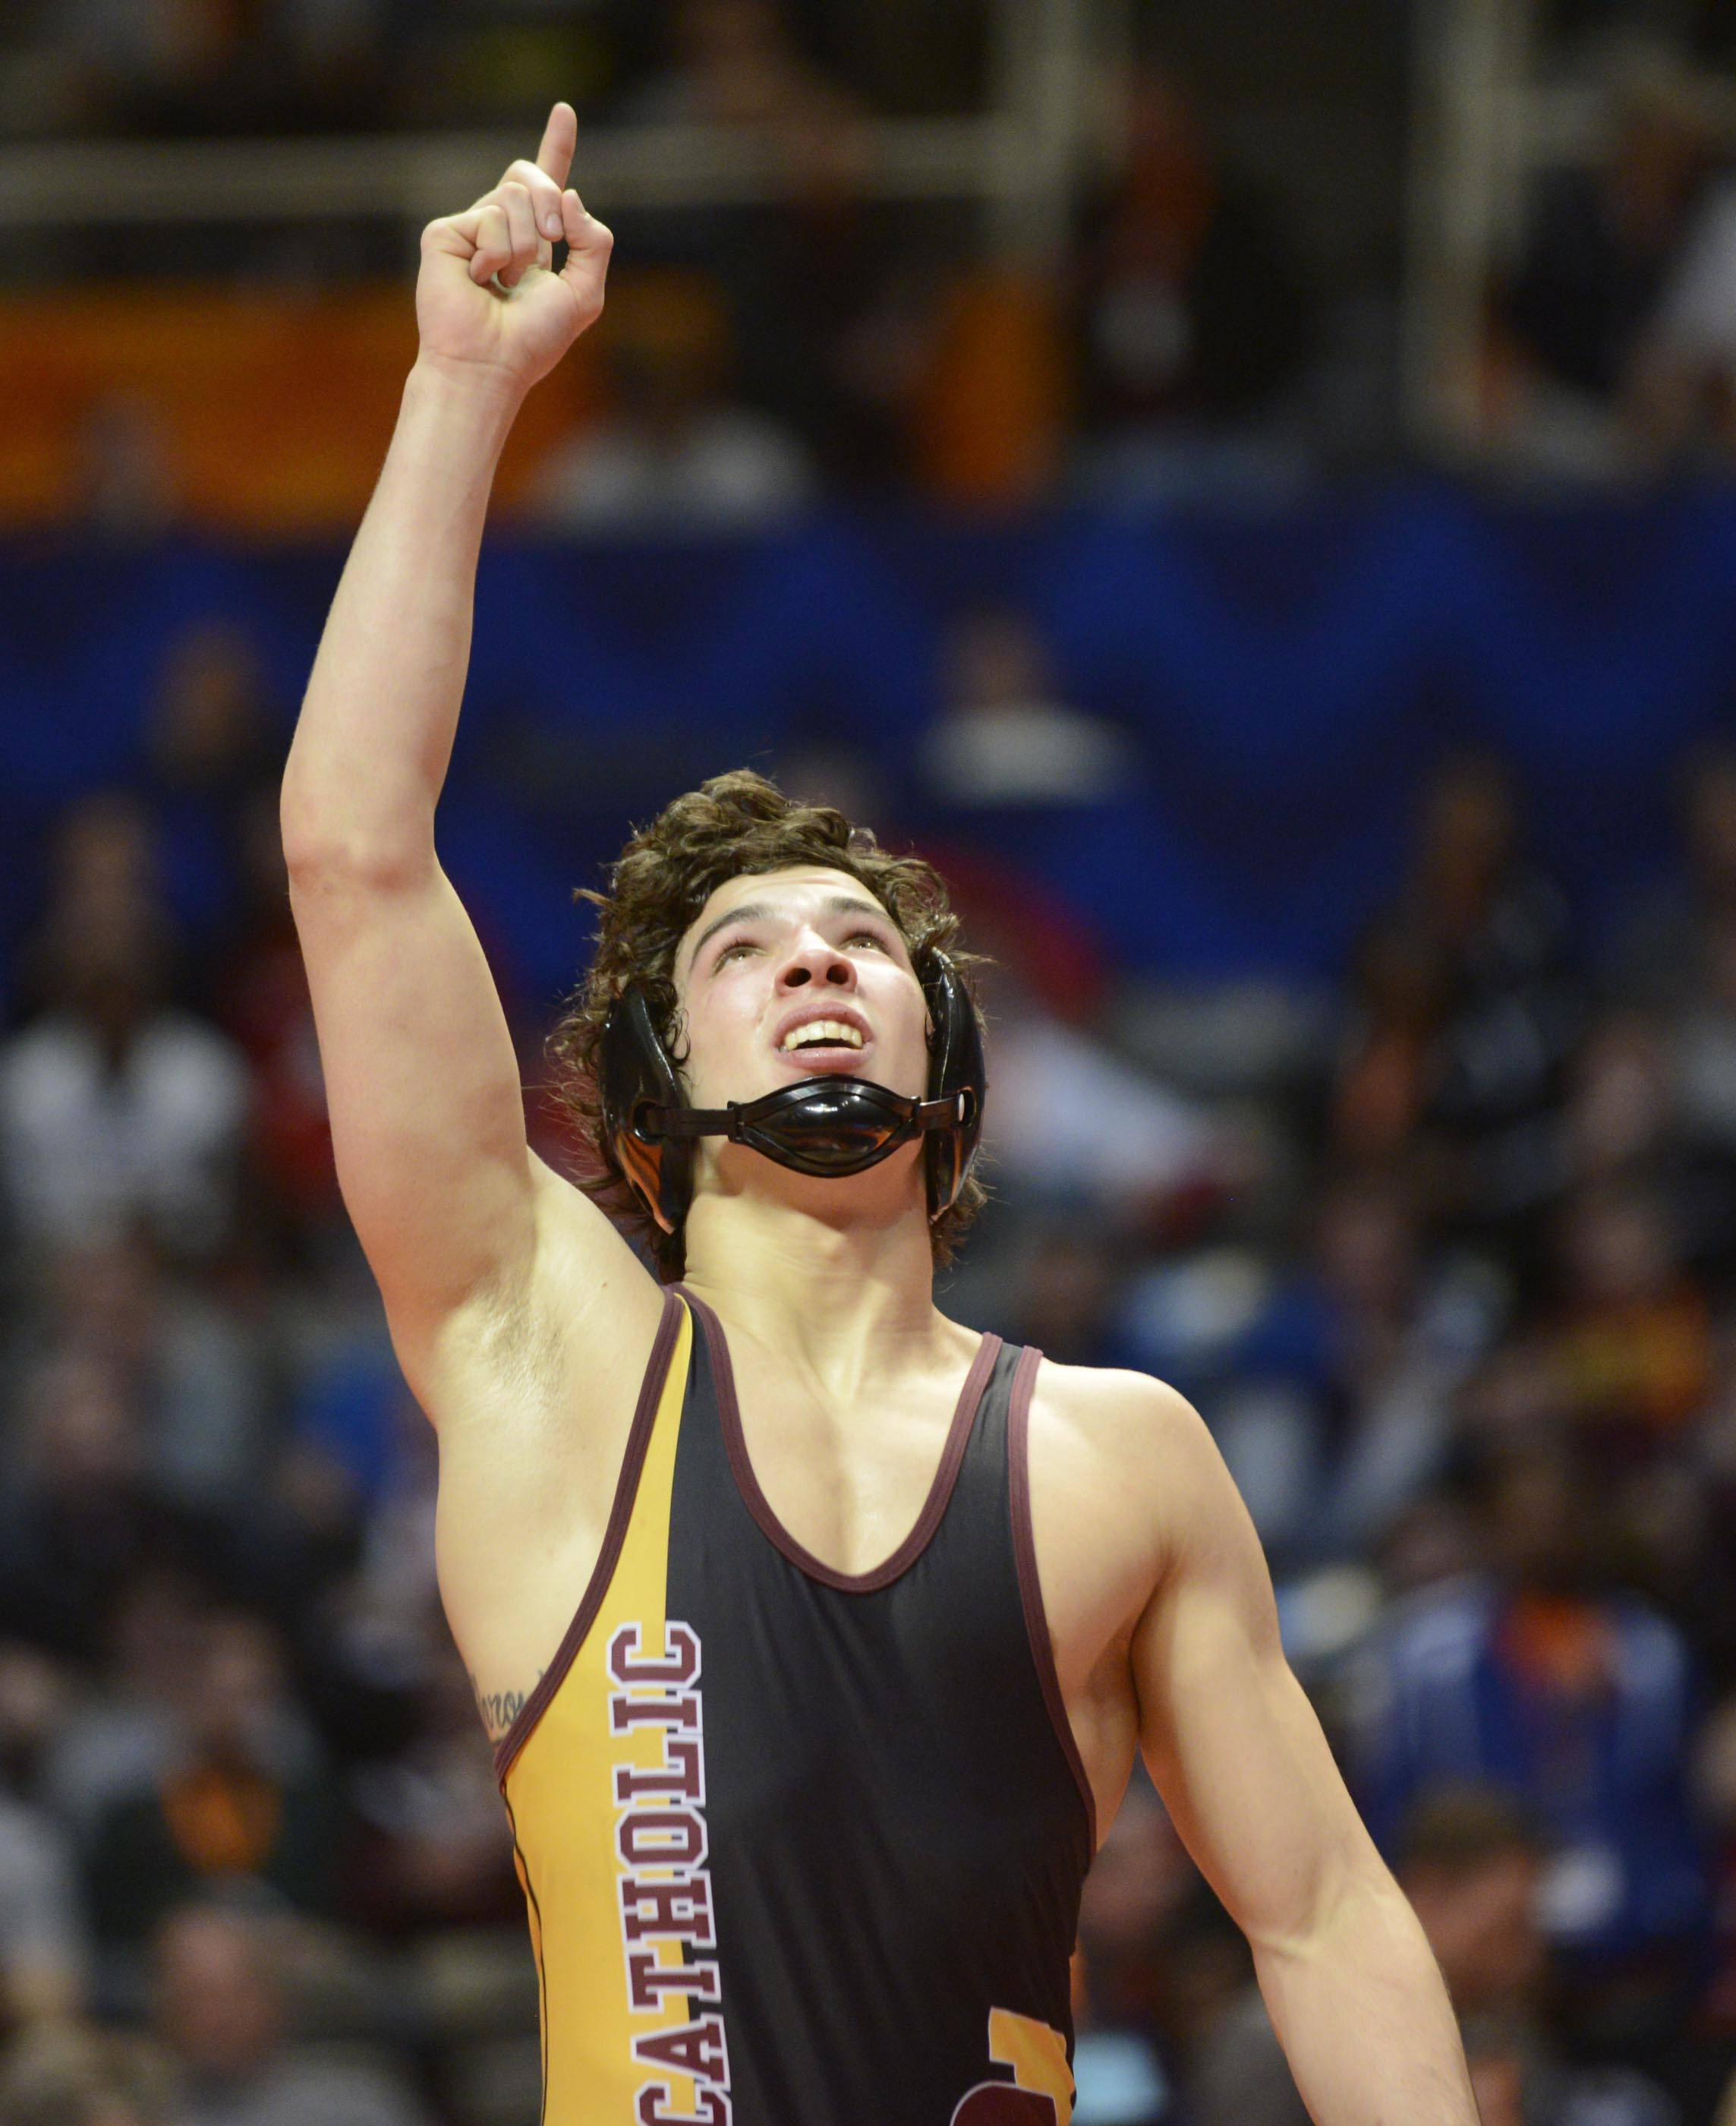 Vincent Turk of Lombard Montini Catholic High School points up after winning against Randle Taborn of Springfield High School Saturday in the 138-pound weight class championship match of the wrestling IHSA Class 2A state tournament at State Farm Center in Champaign.